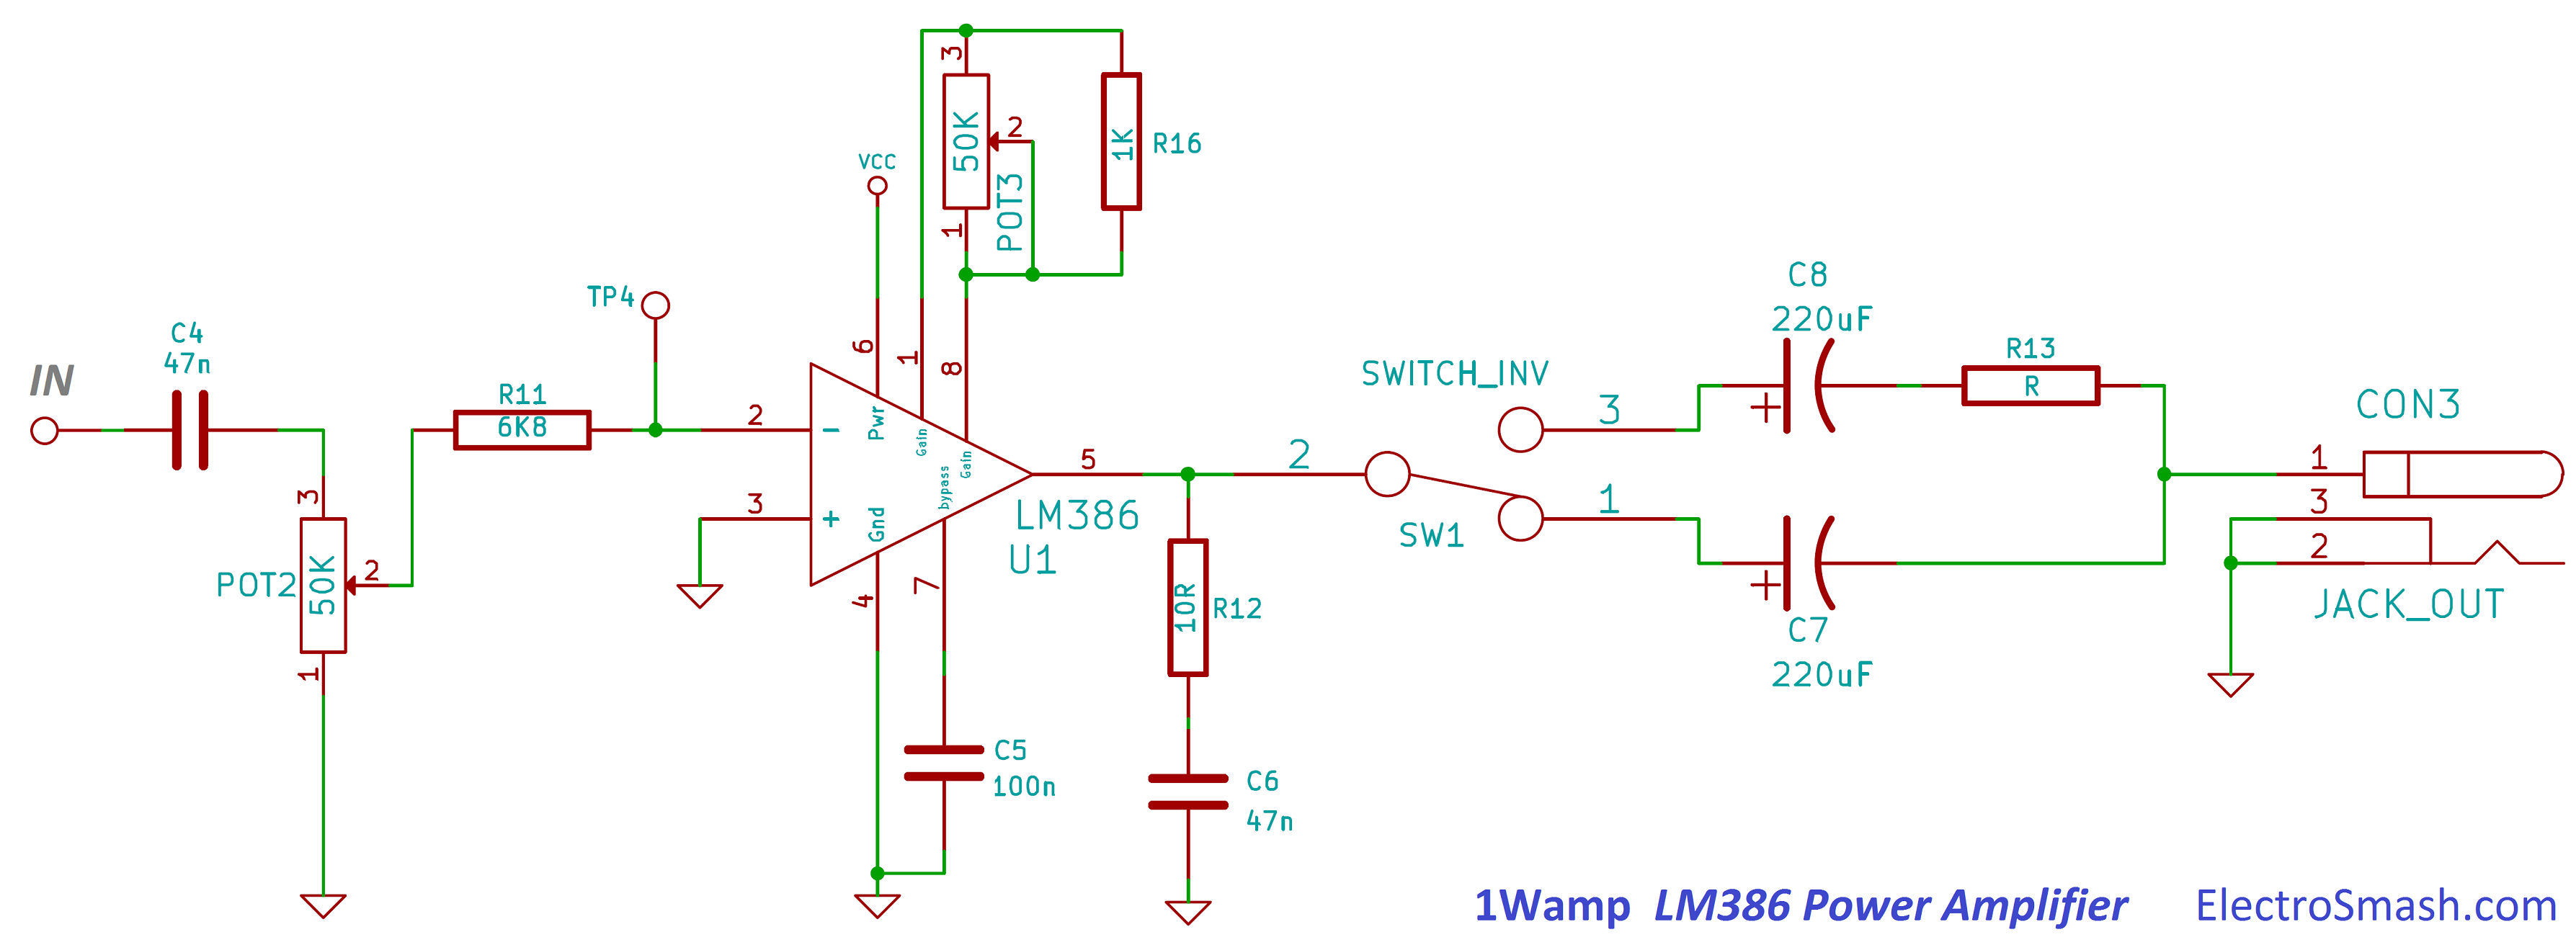 TM 55 4920 401 13P 257 as well 68 Watts Lm3886 Power  lifier besides Vcsel Technology Cost Effective 3d Imaging And Gesture Recognition N3170 besides 3w Led Surucu Devreleri Uc3842 Uc3845 furthermore Timer. on integrated circuit diagram